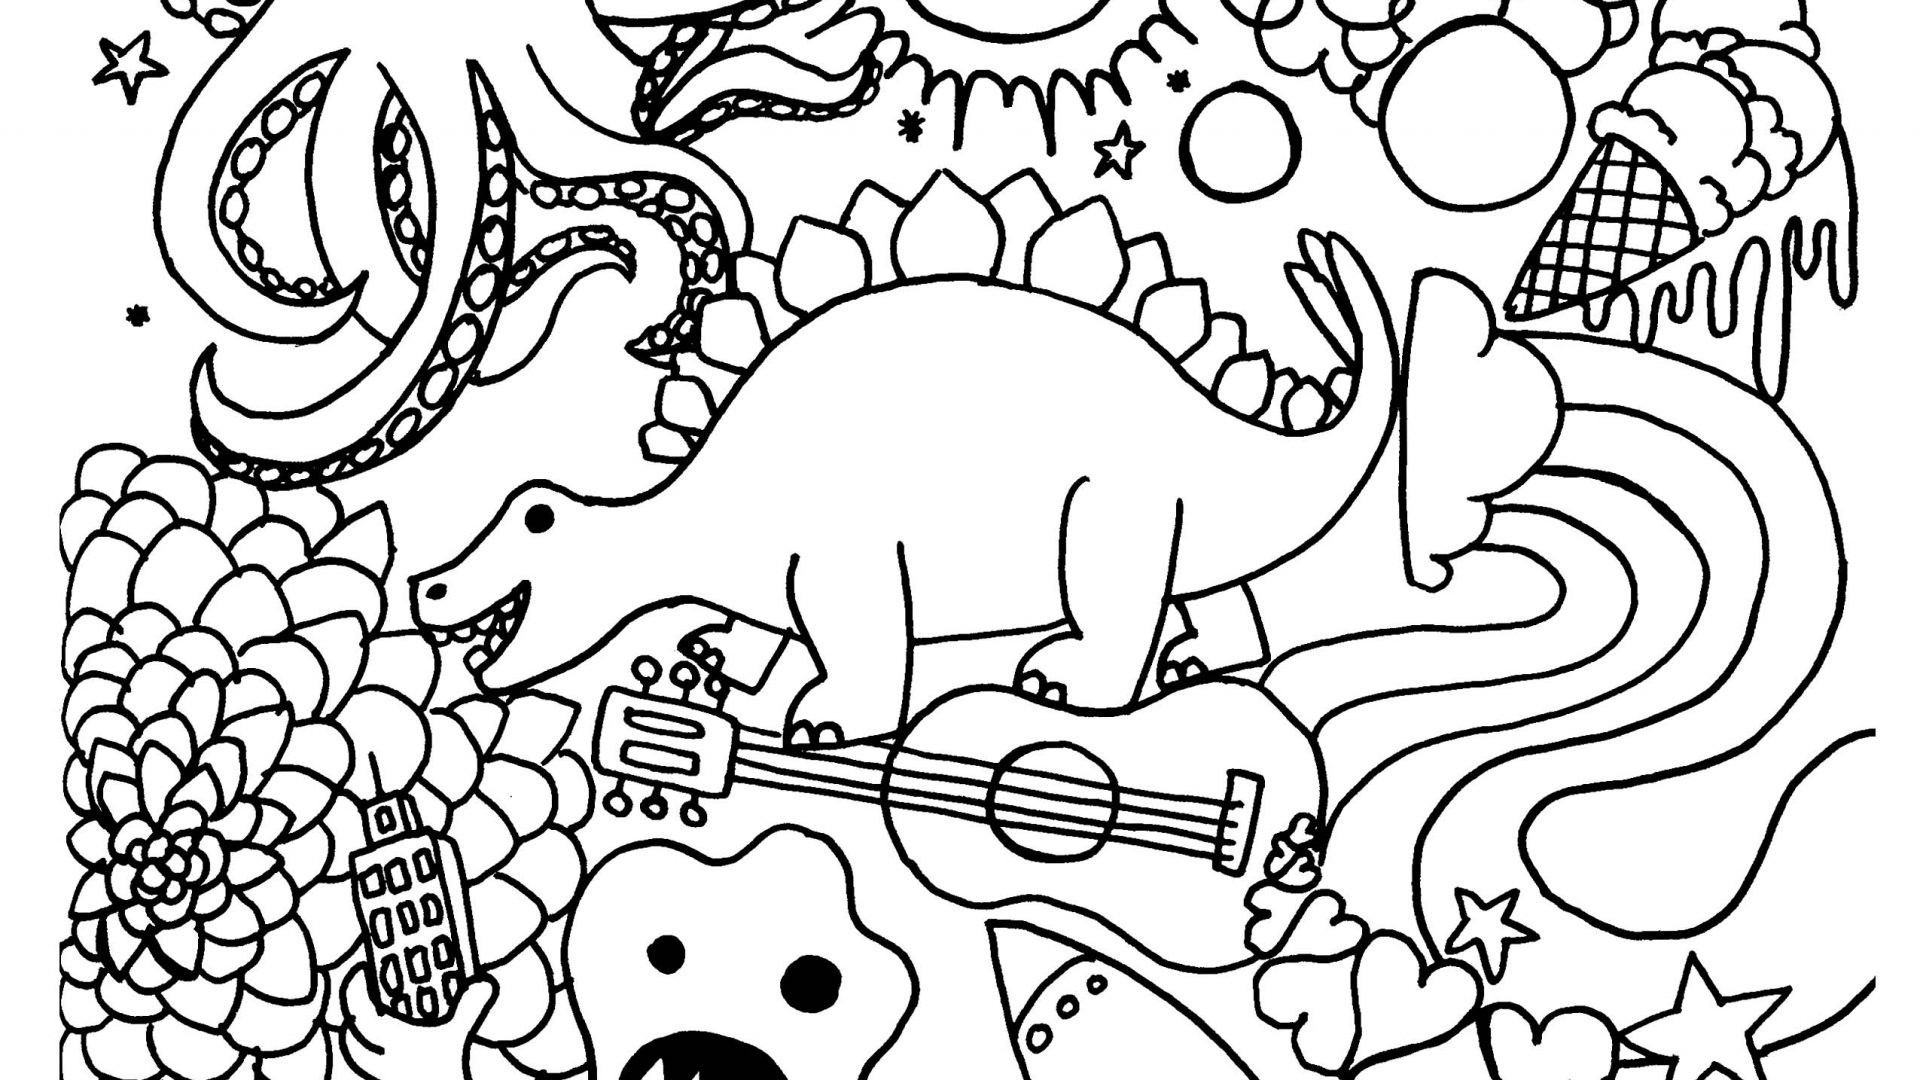 Math Coloring Worksheets 2Nd Grade Fun Addition Save Magnificent pertaining to Math Coloring Worksheets For 2Nd Graders